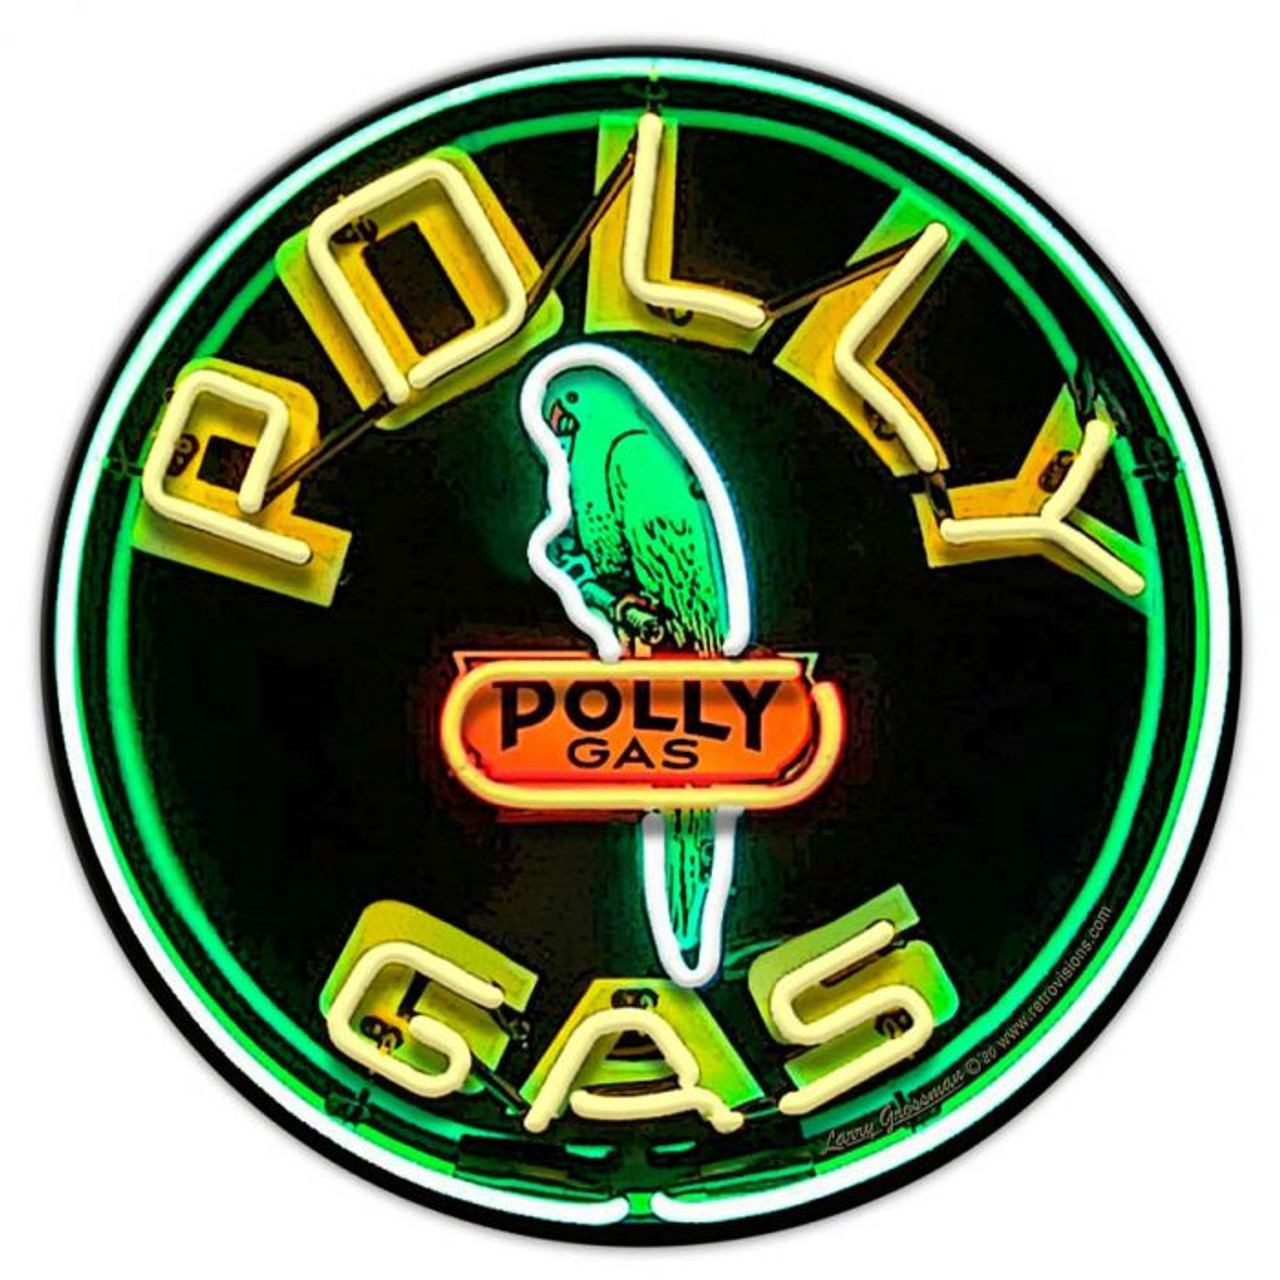 Polly Gas Neon Style Metal Sign  16 x 16 Inches